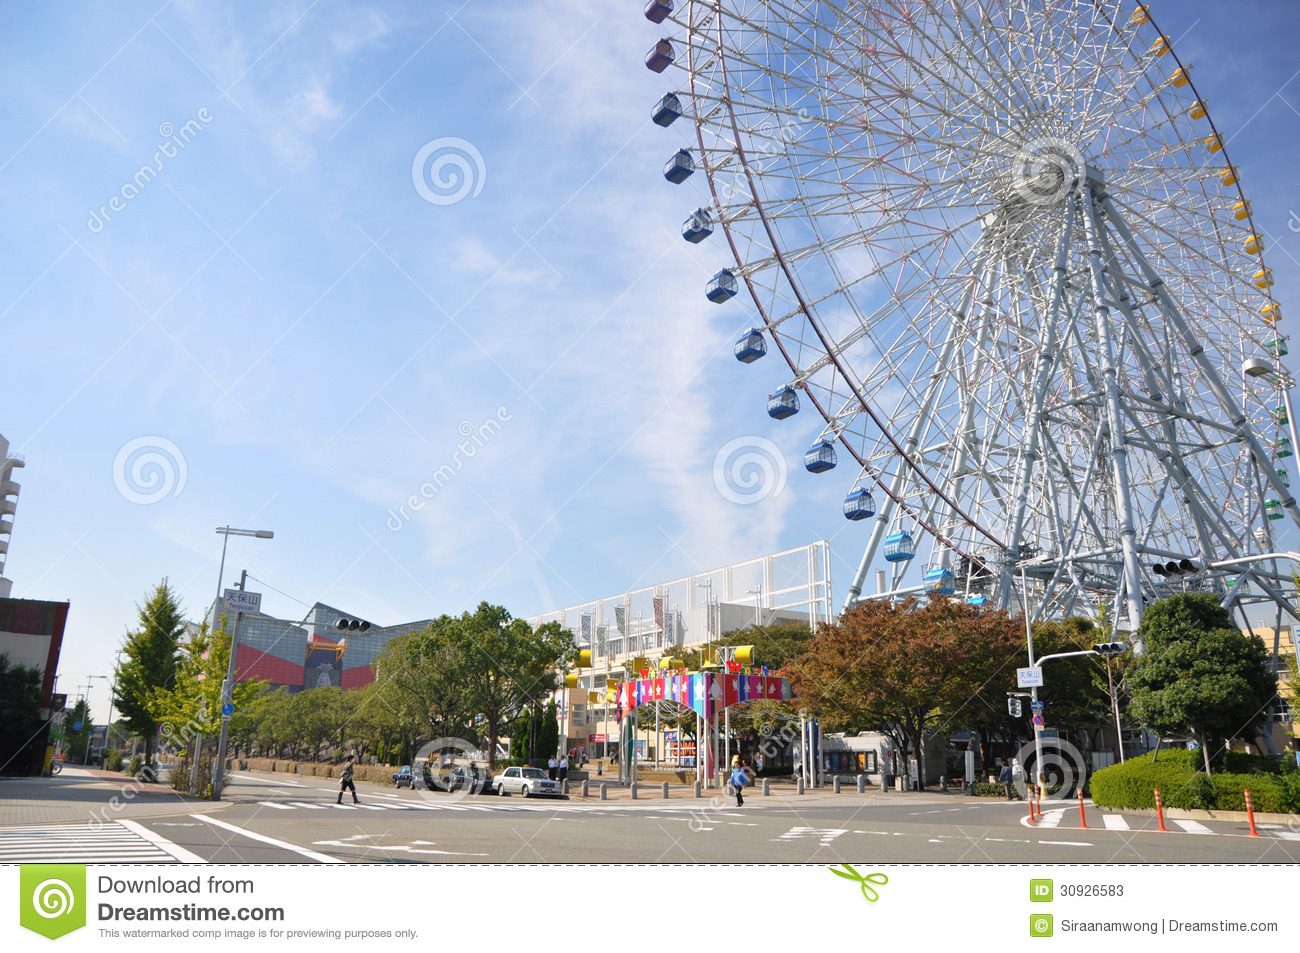 Vacation Cabin Plans Kyoto Oct 23 Ferris Wheel In Tempozan Harbor Village